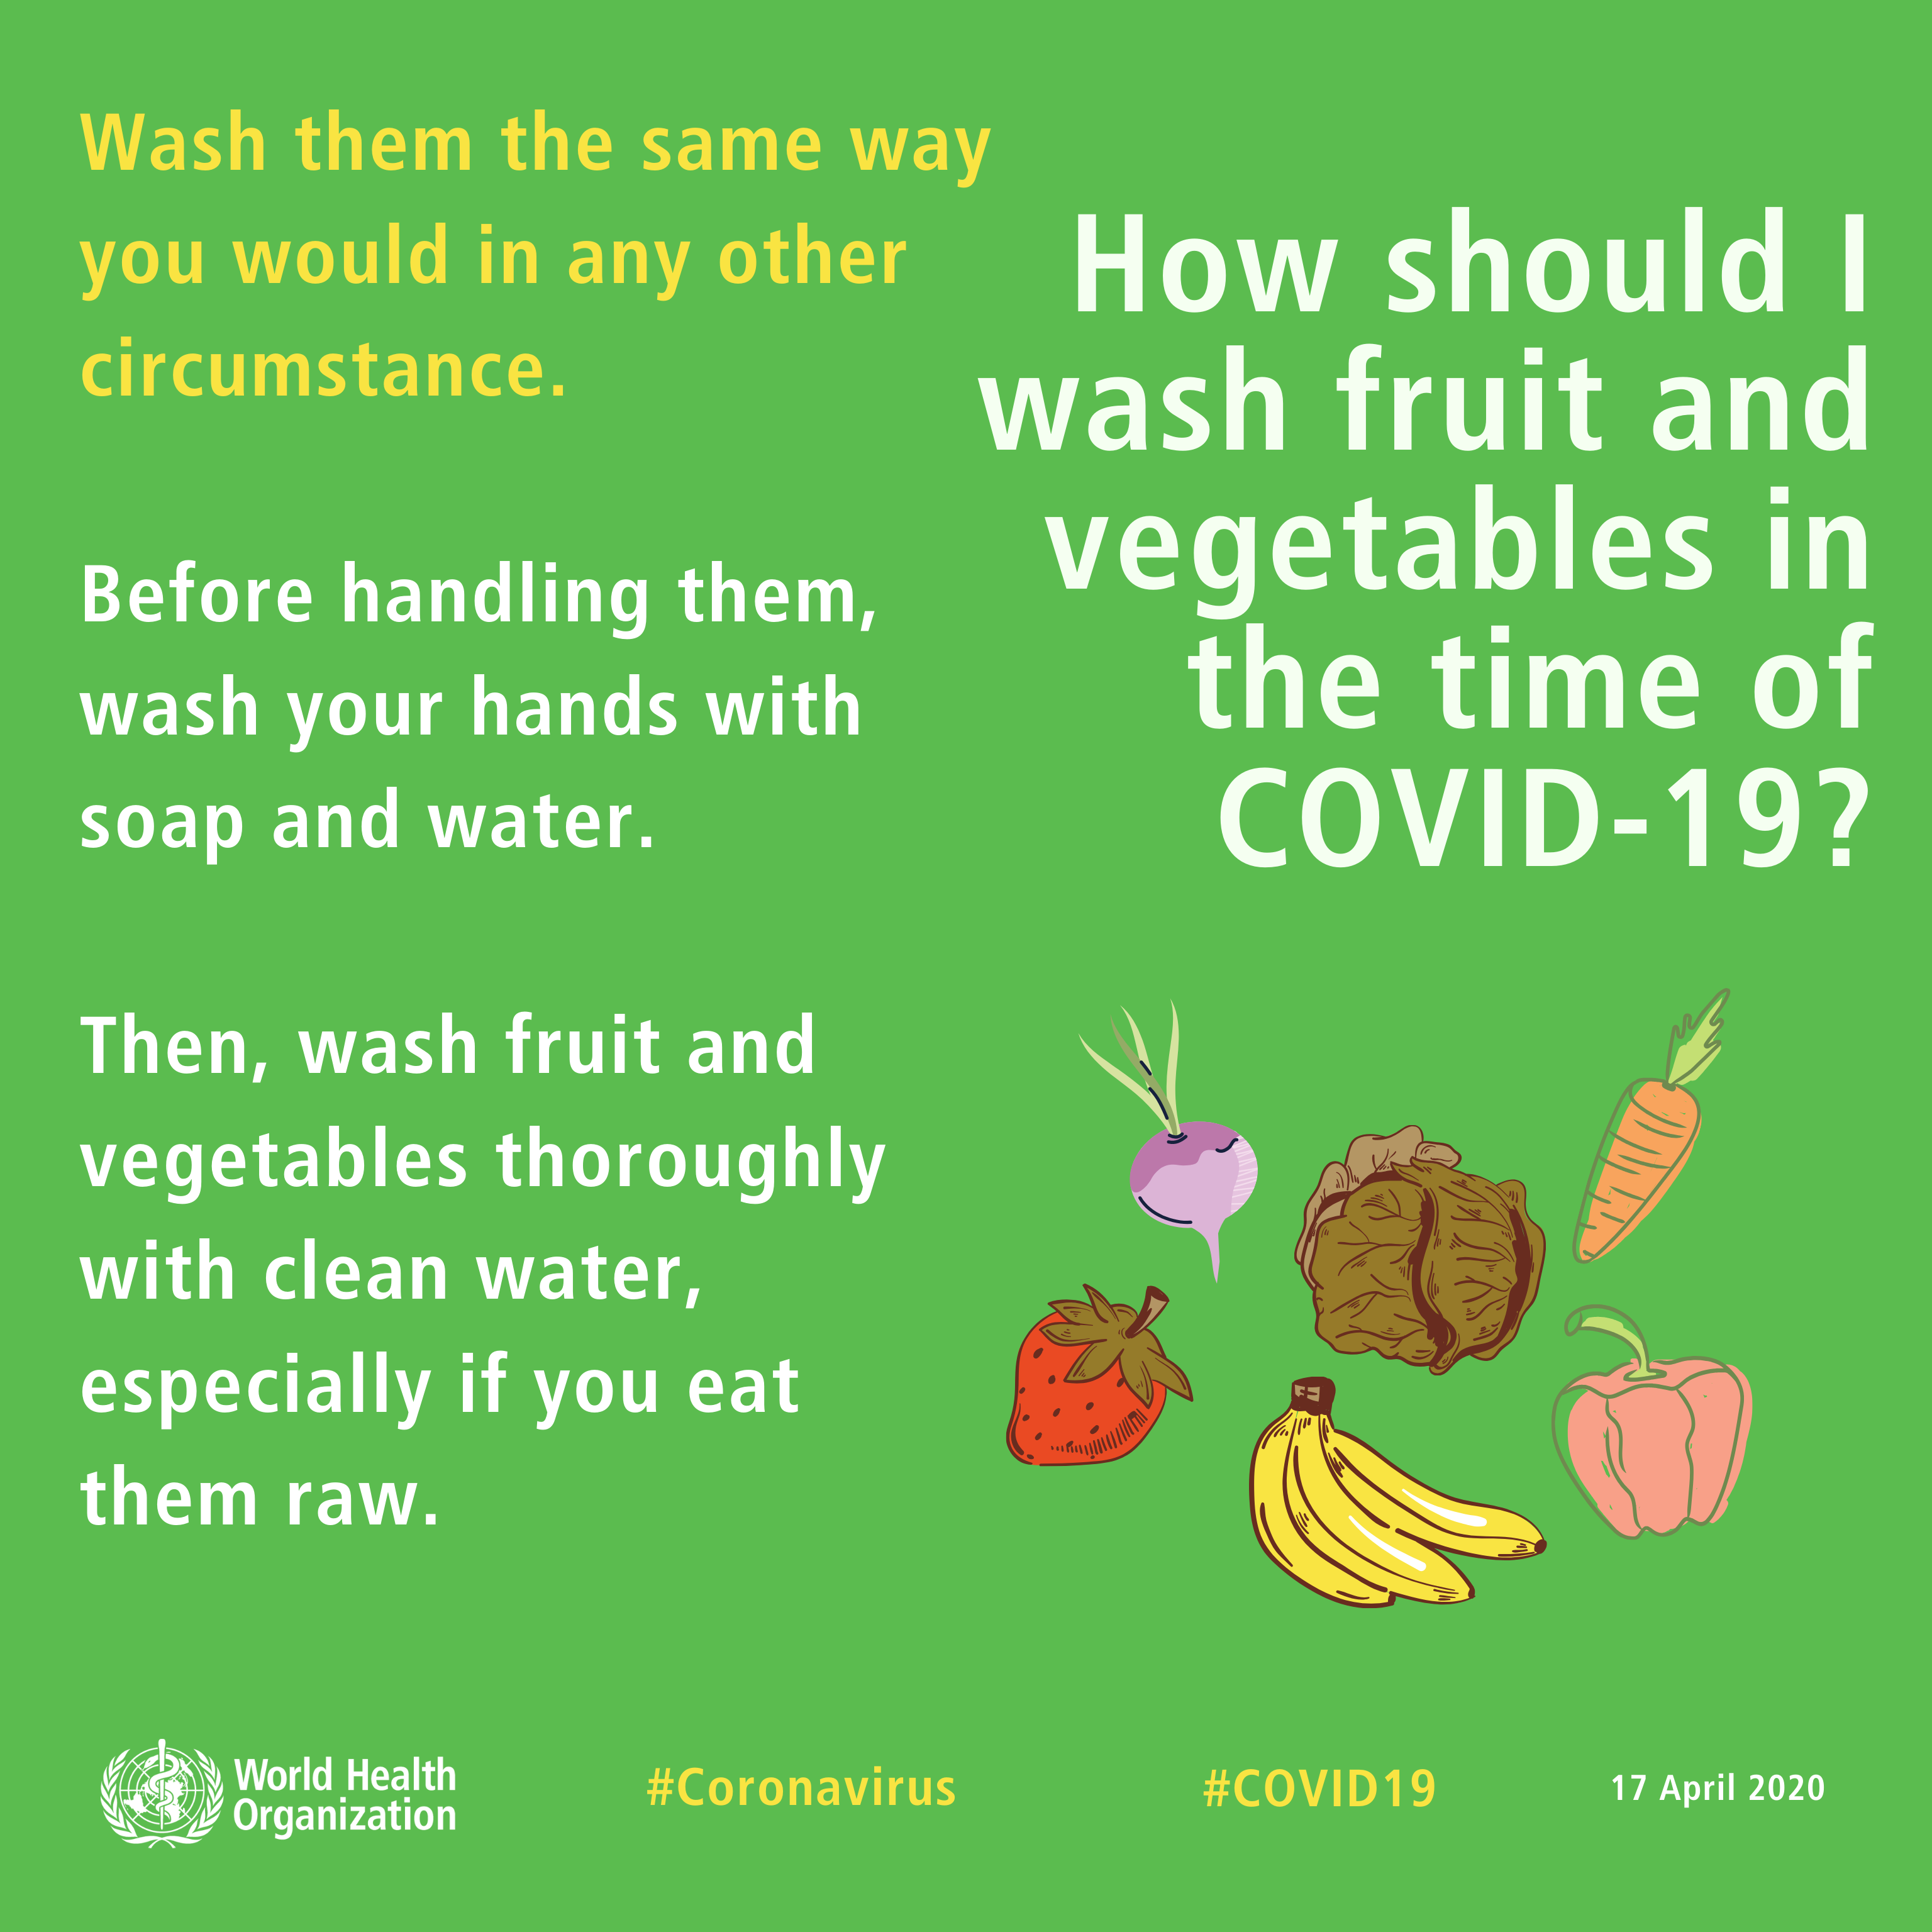 Q How should I wash fruit and vegetables in the time of